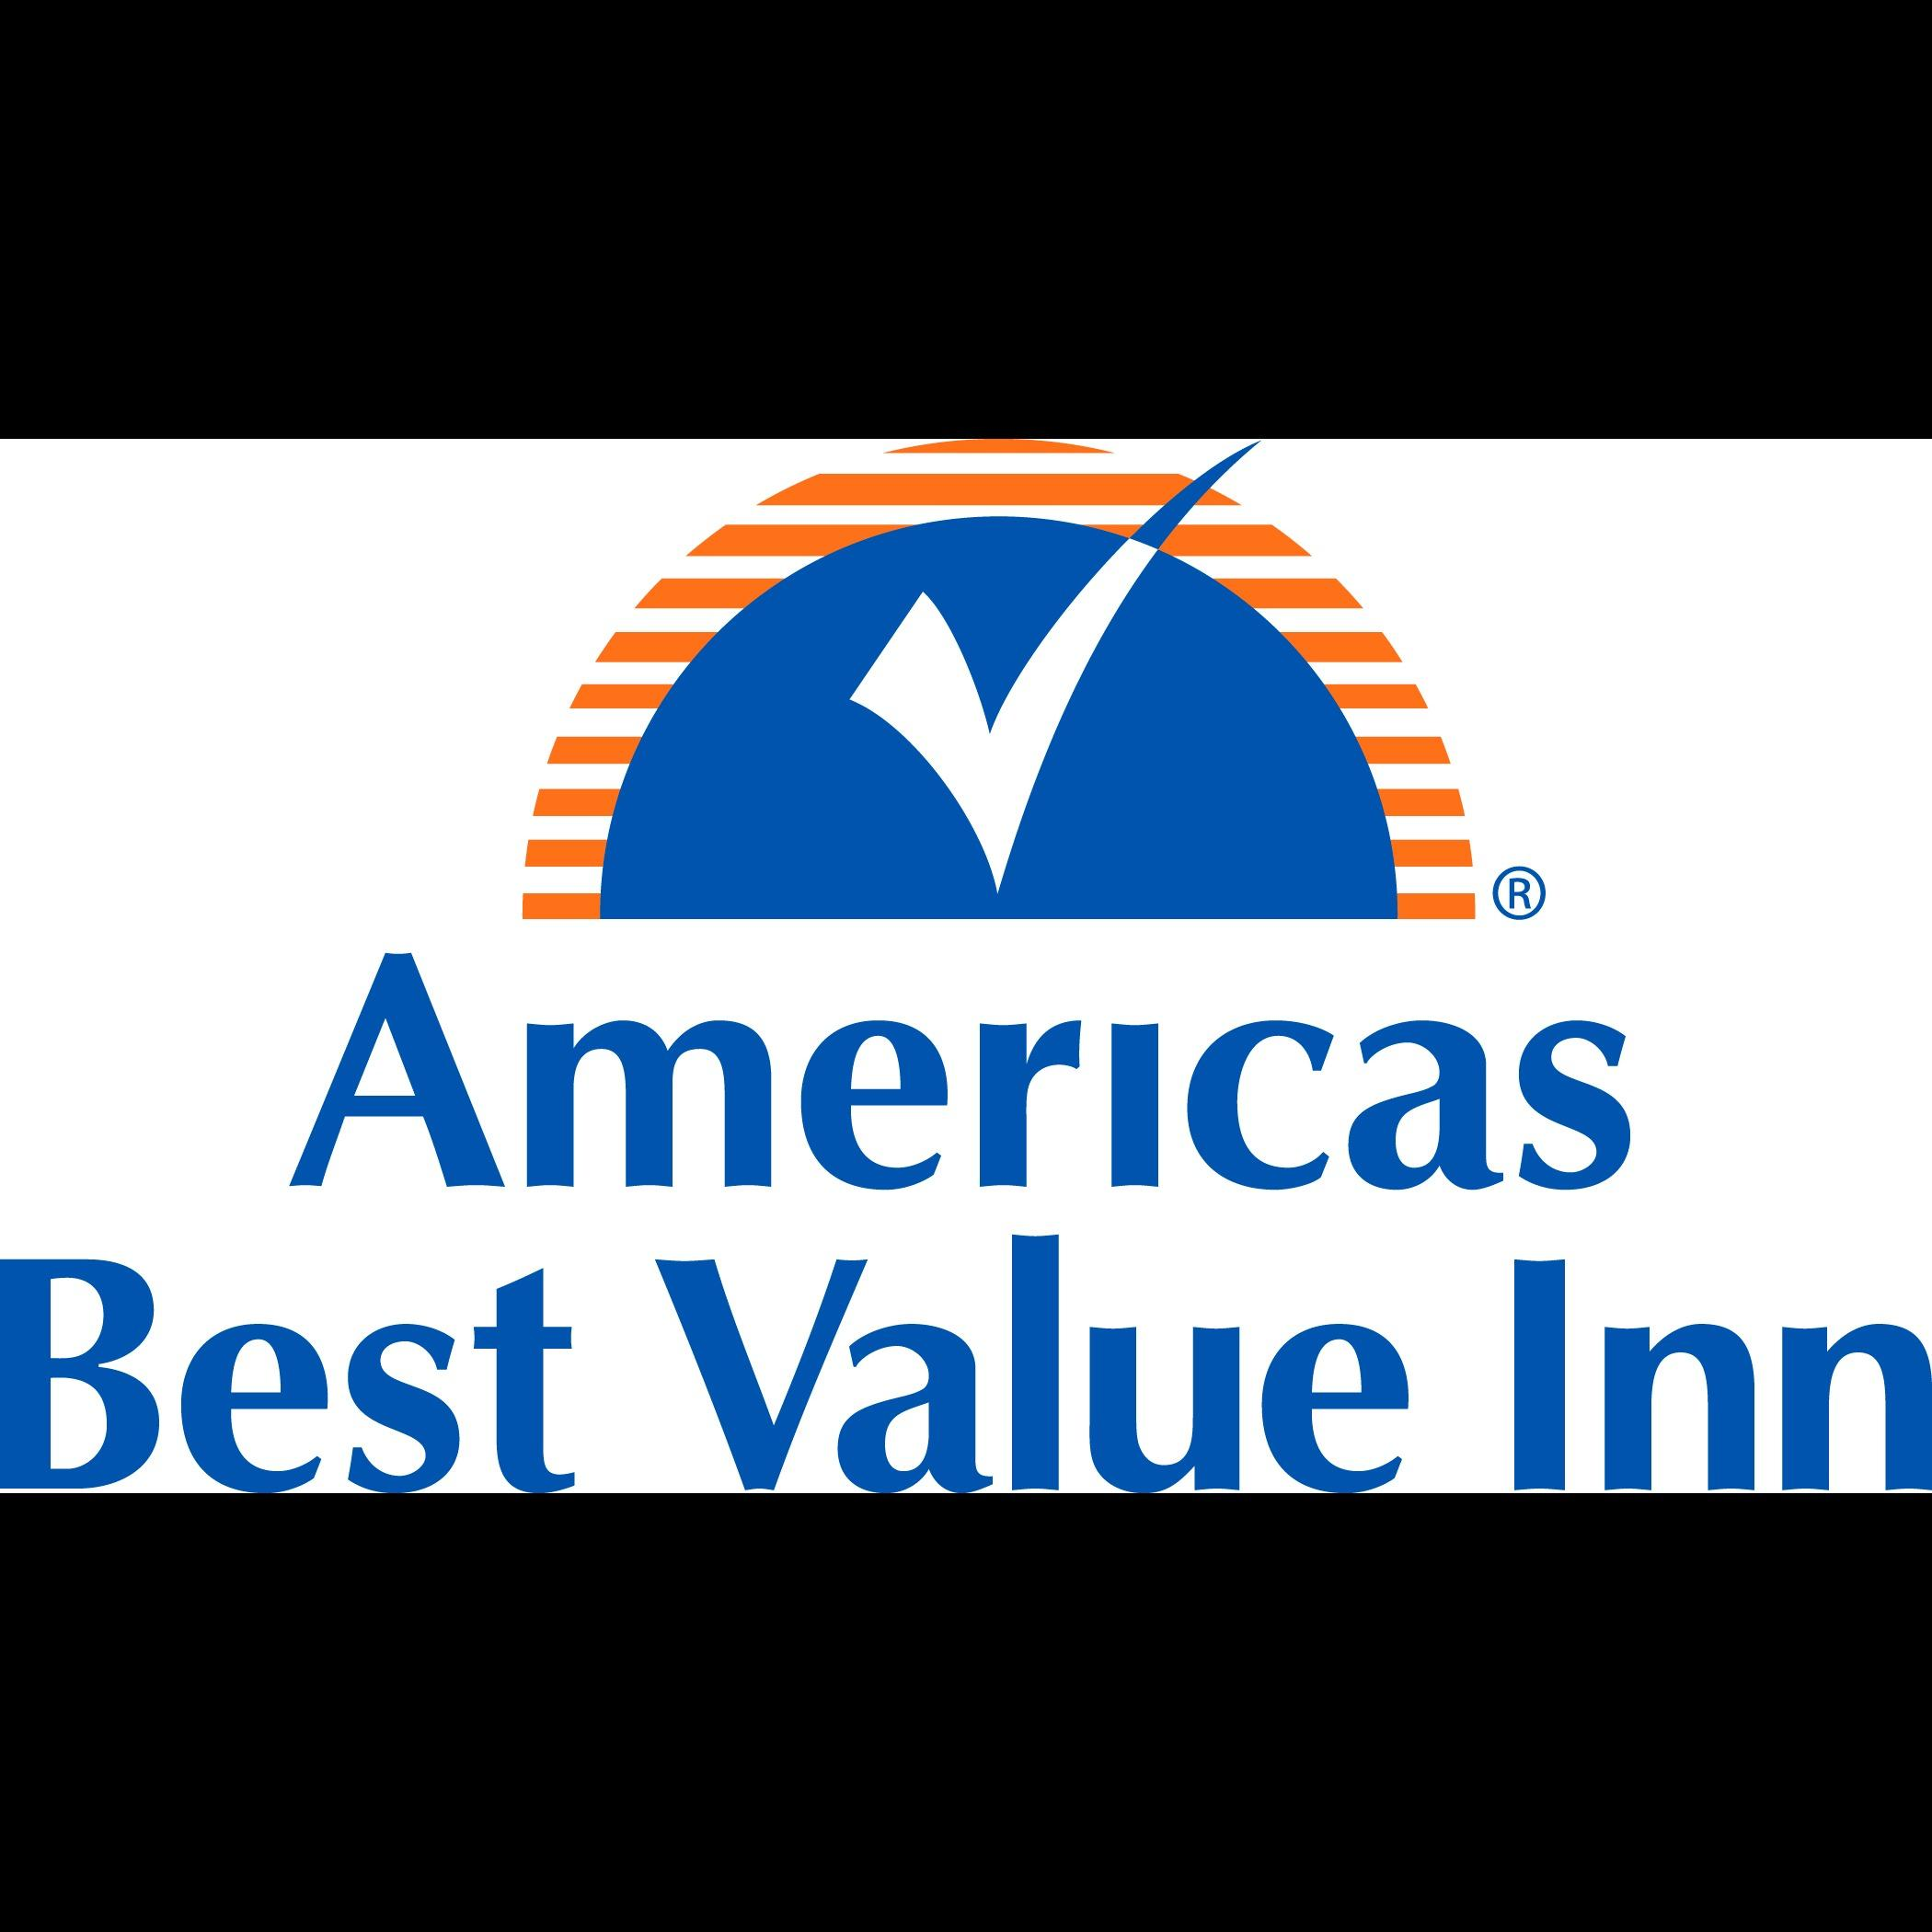 Americas Best Value Inn - Wethersfield/Hartford